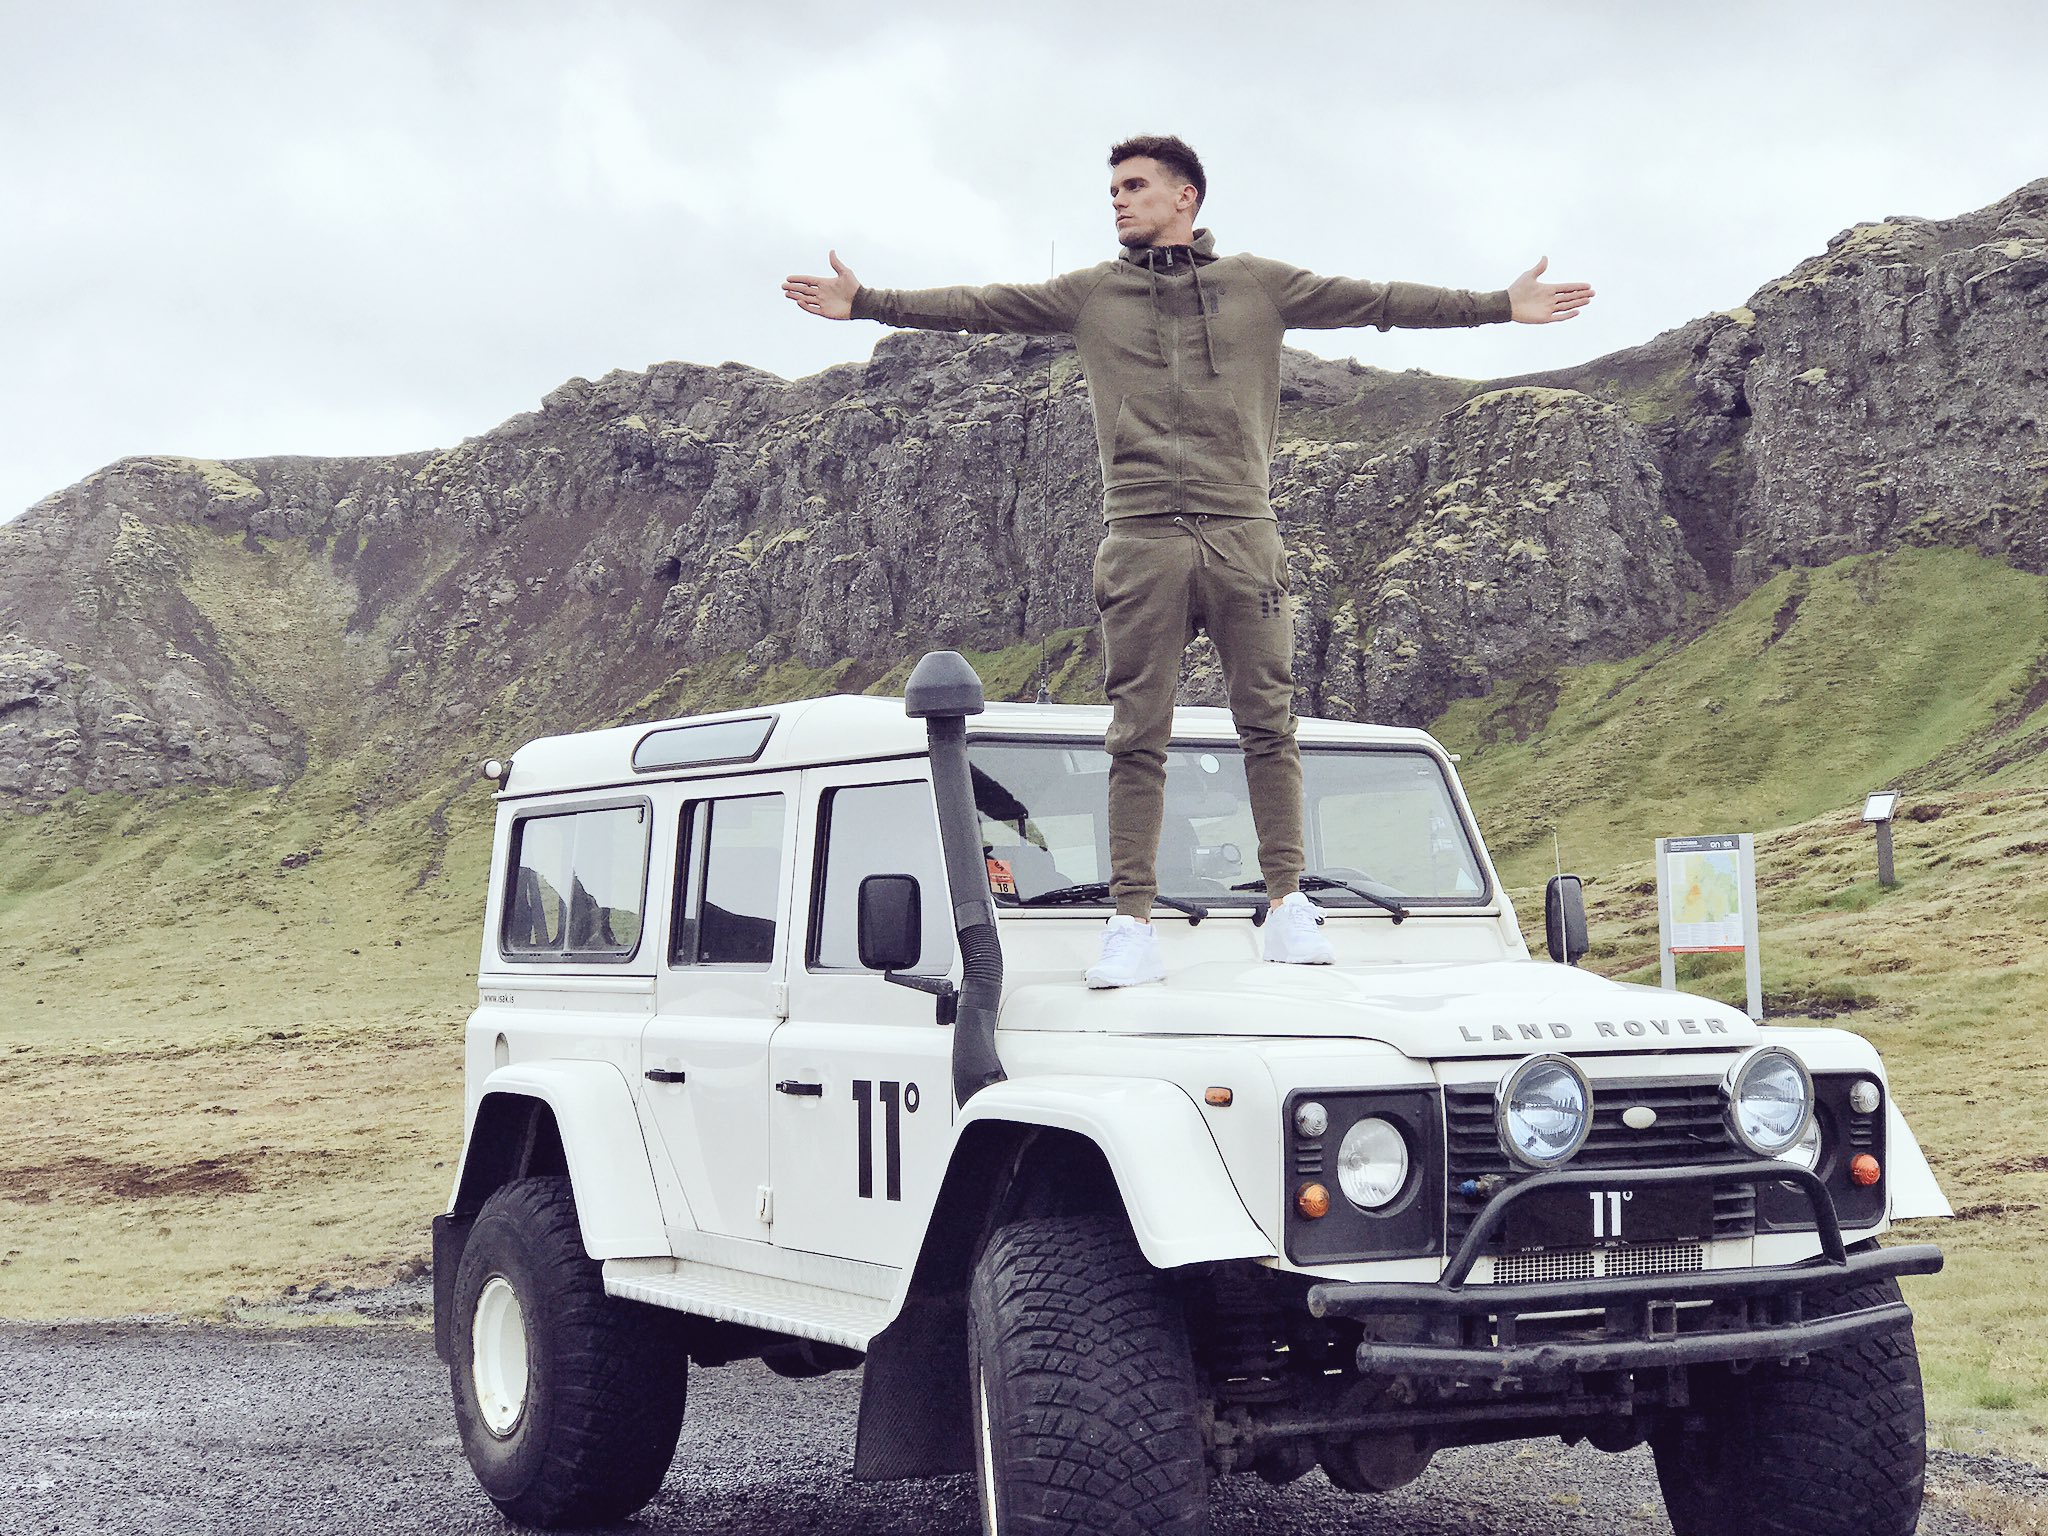 Amazing day in Iceland with @11_Degrees this place is amazing!! Day 2 tomorrow 👌🏻📸 night night ✌🏻 https://t.co/ANAjomt1s5